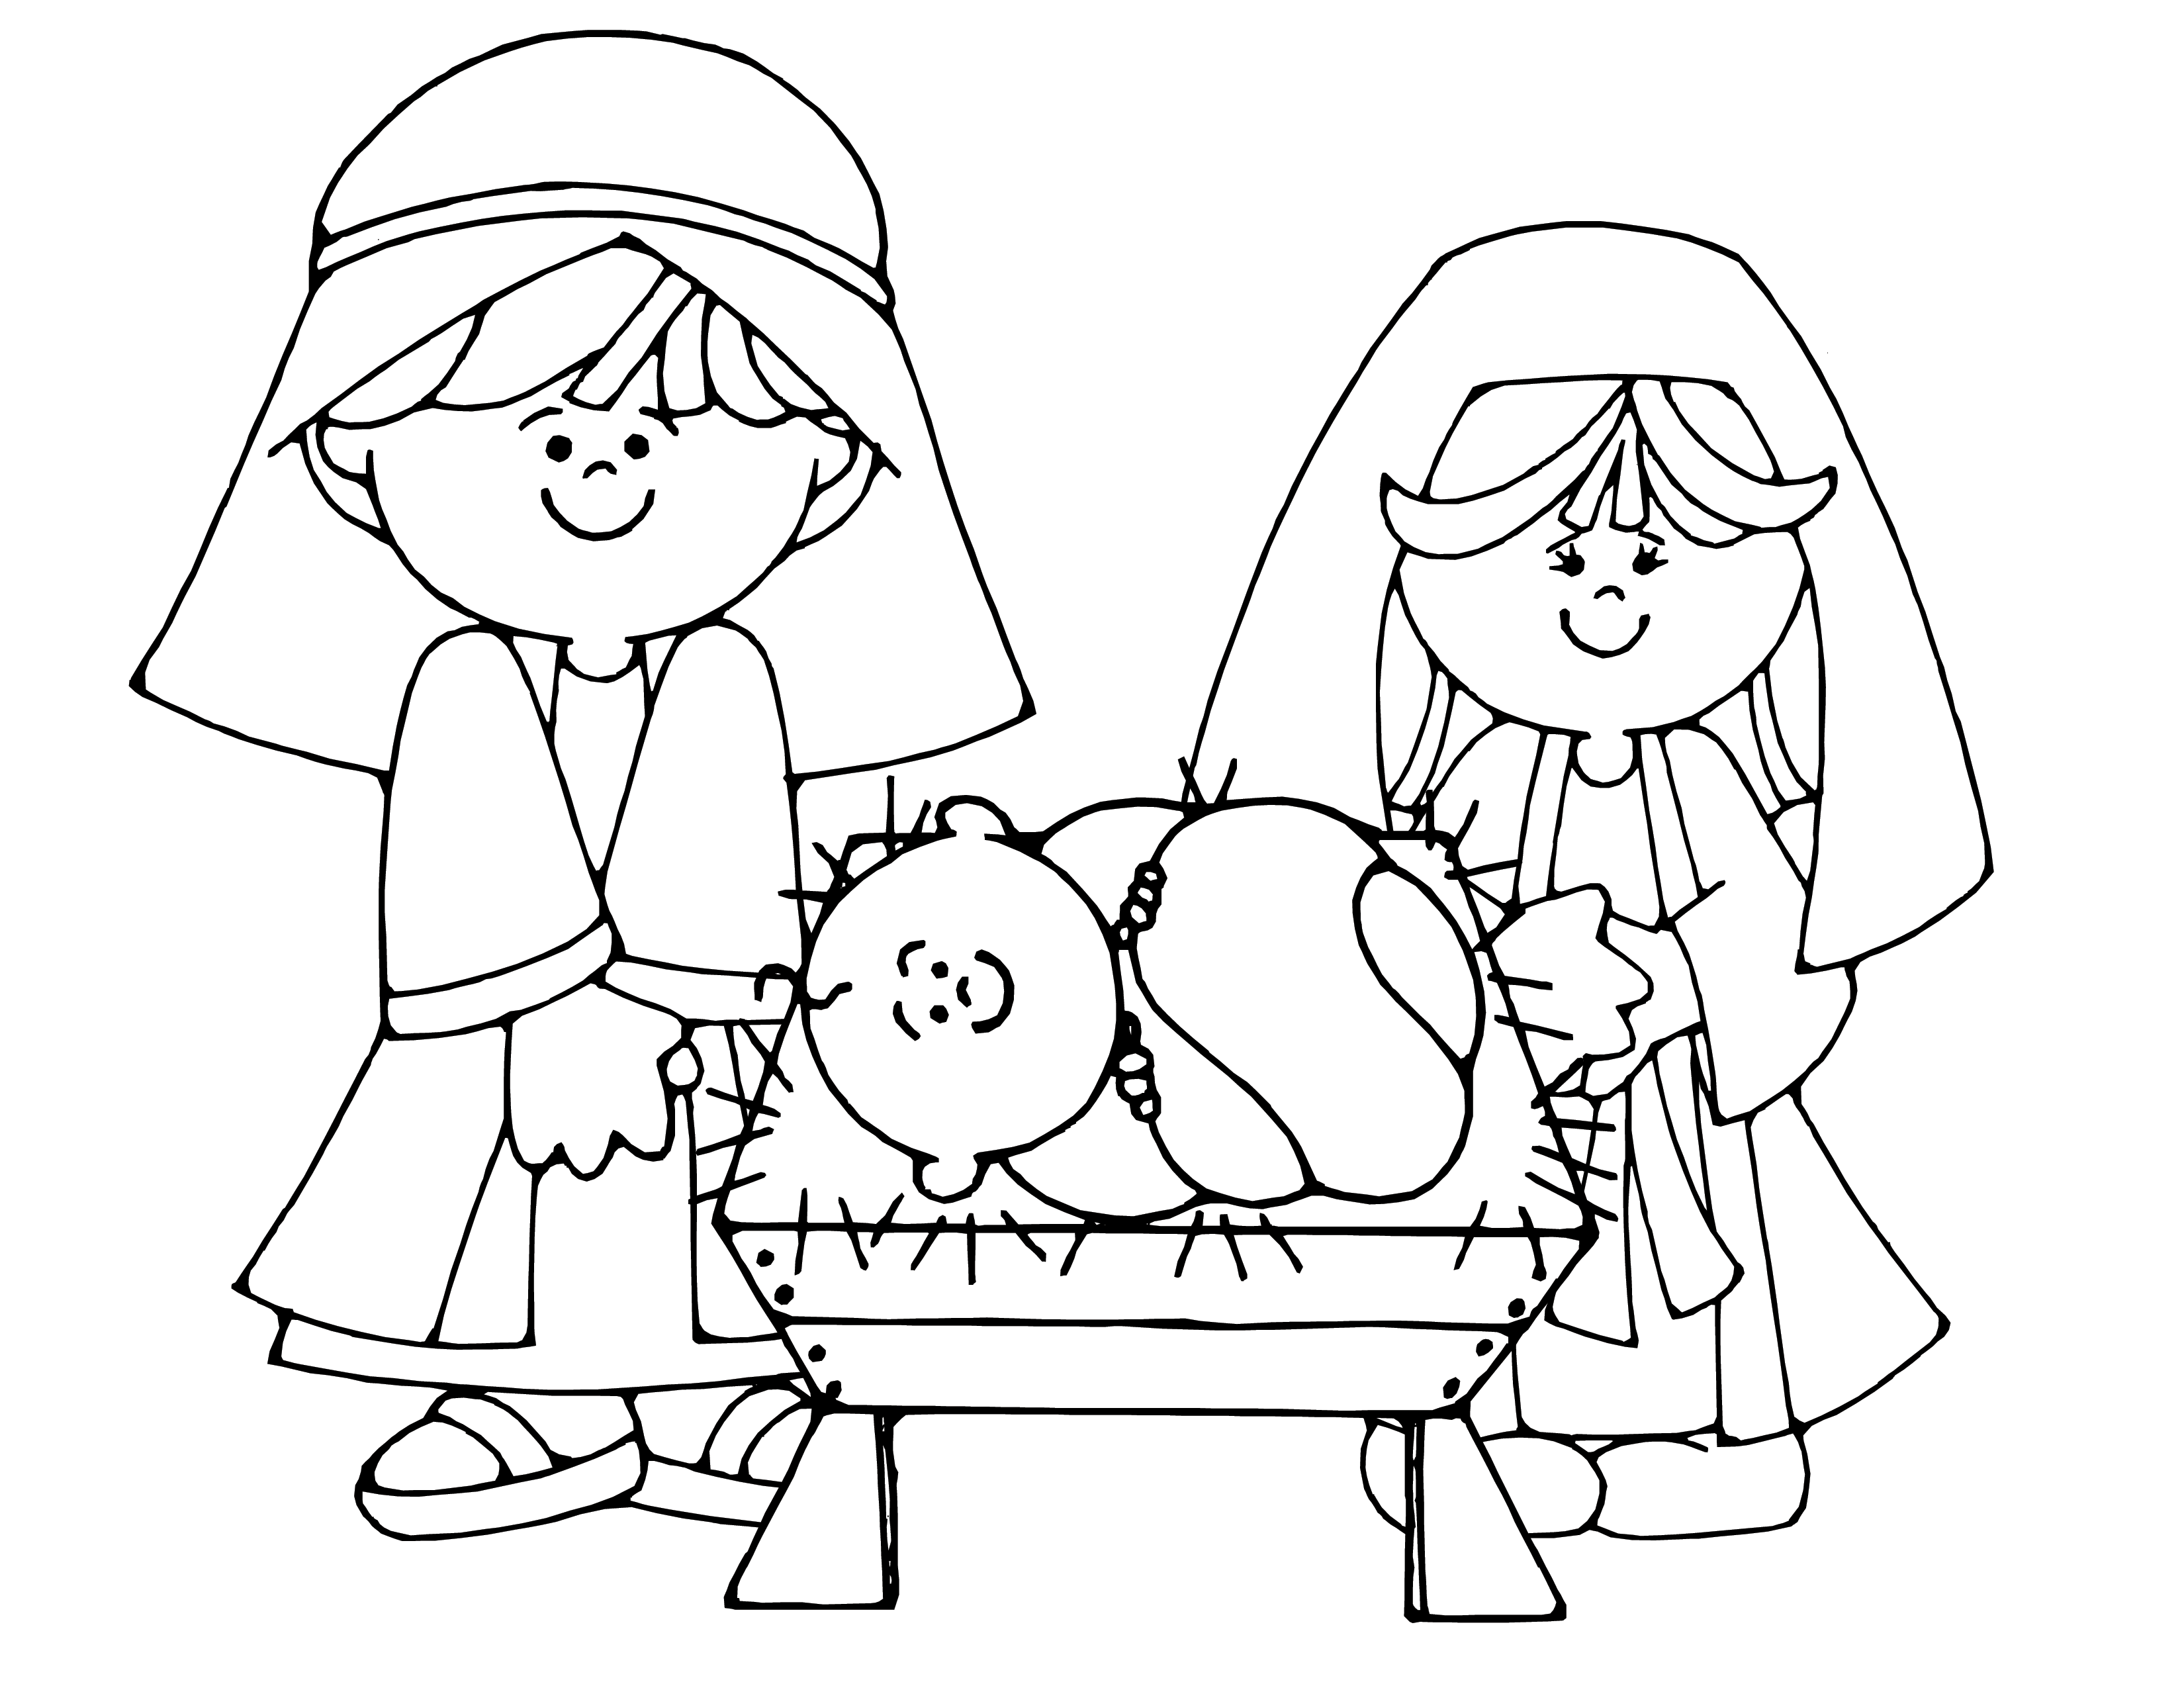 Free Printable Nativity Coloring Pages for Kids - Best Coloring ...